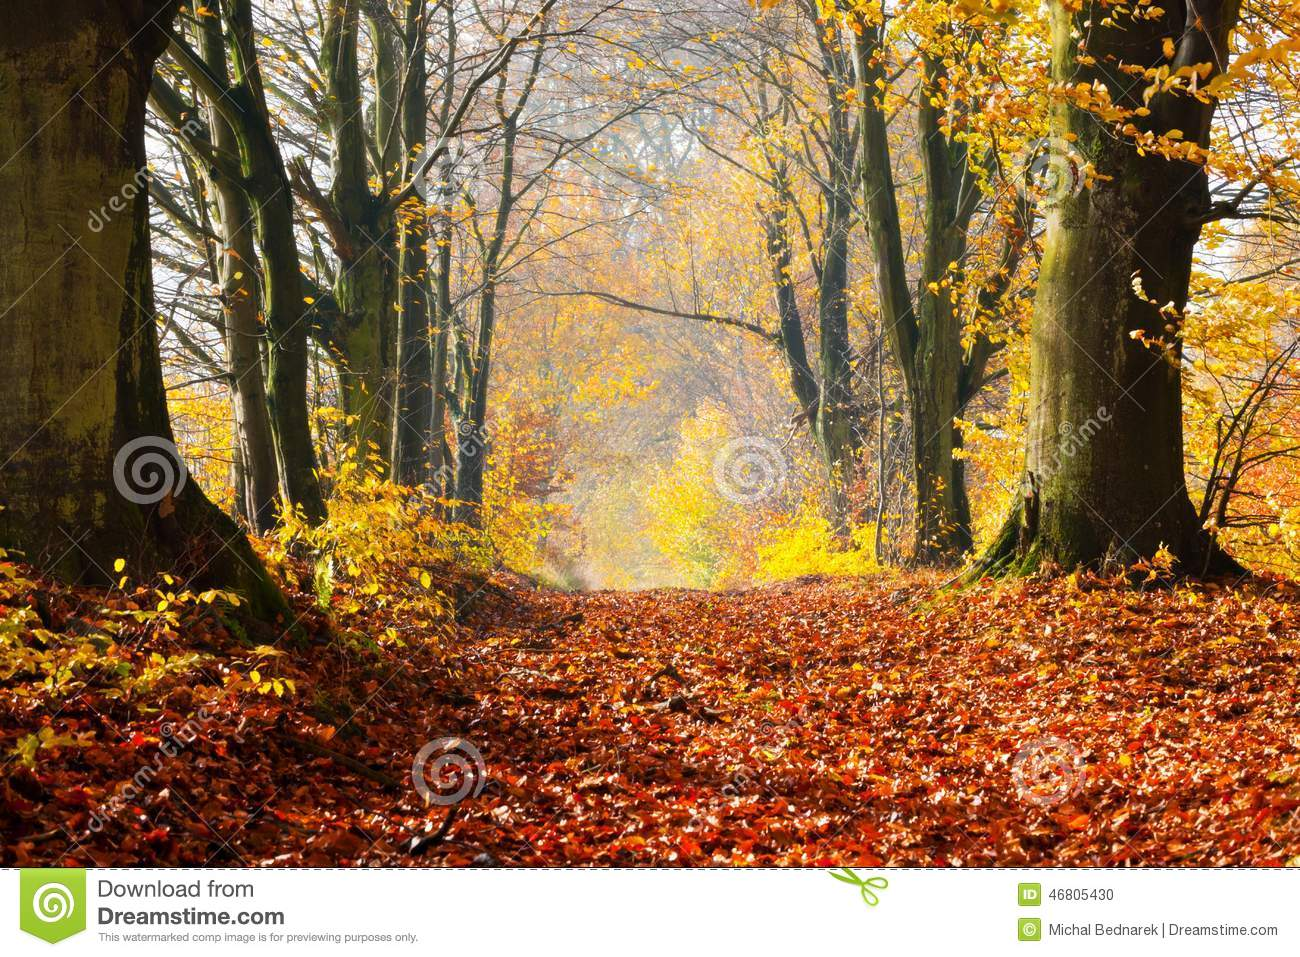 Free Fall Foliage Wallpaper Autumn Fall Forest Path Of Red Leaves Towards Light